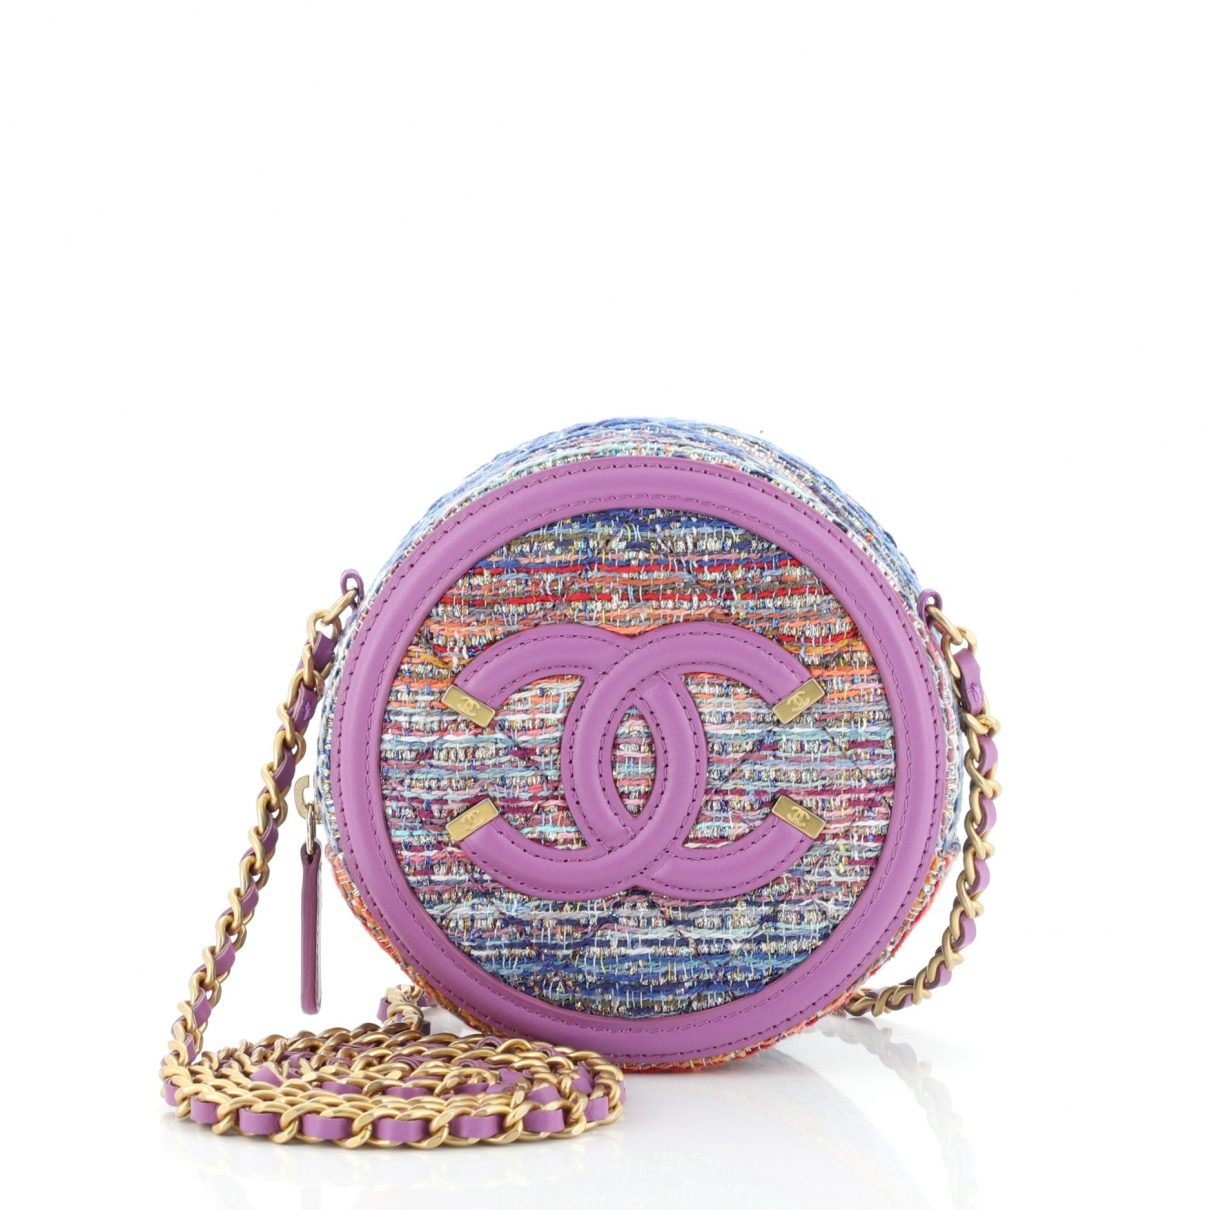 Chanel \N Multicolour Leather handbag for Women \N